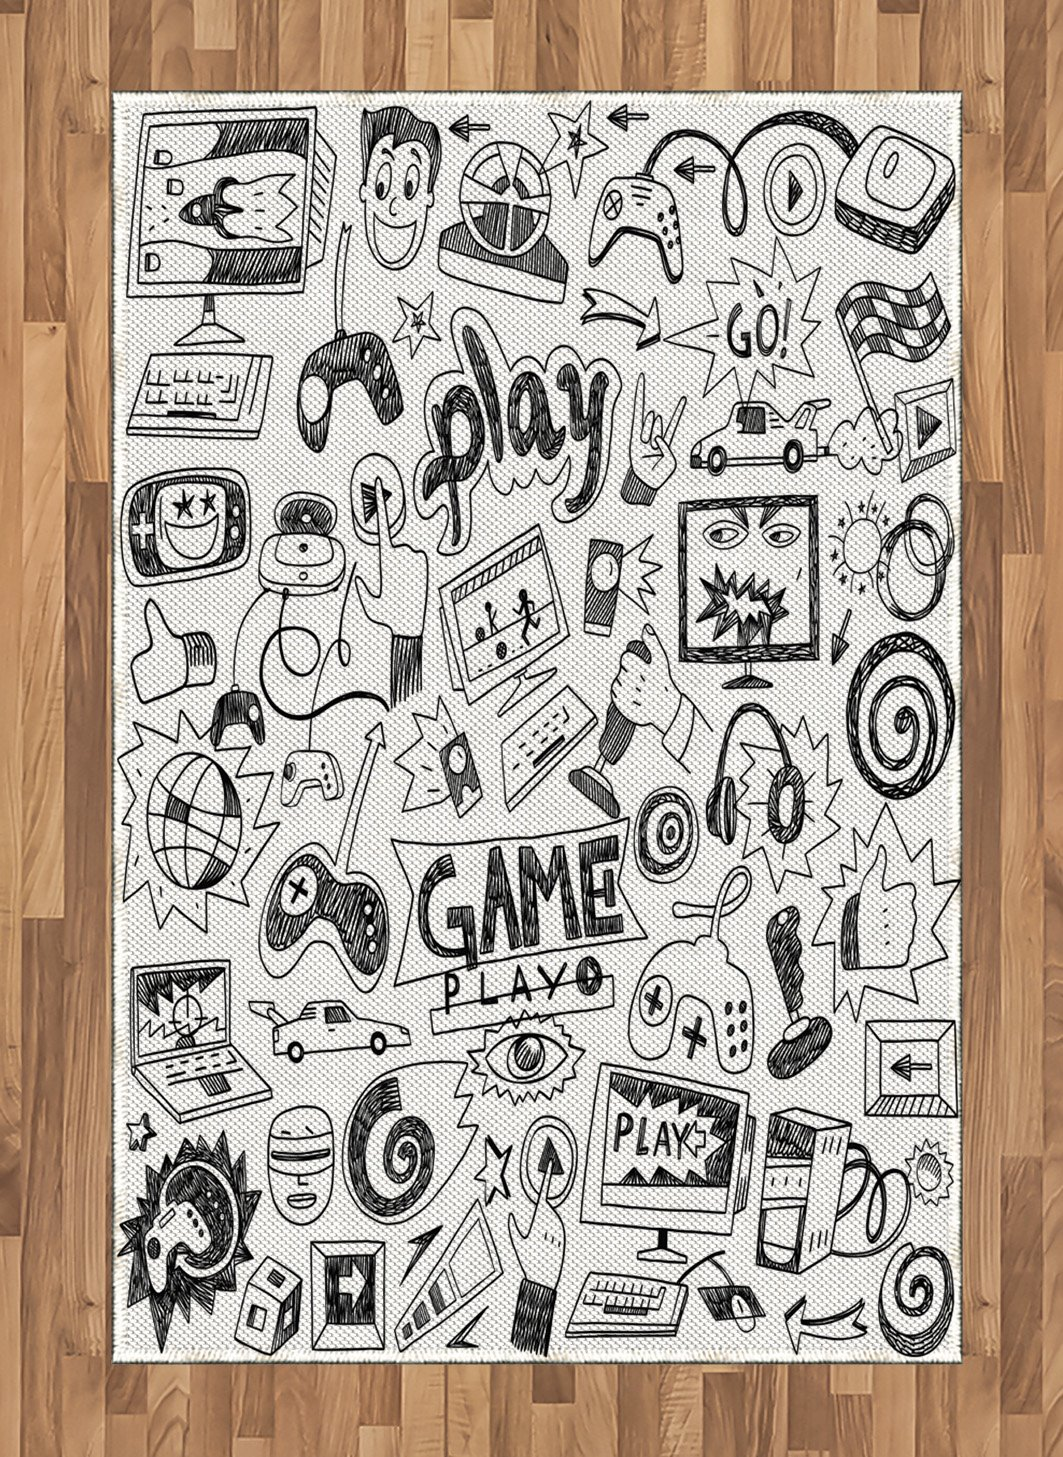 Ambesonne Video Games Area Rug, Monochrome Sketch Style Gaming Design Racing Monitor Device Gadget Teen 90's, Flat Woven Accent Rug for Living Room Bedroom Dining Room, 4 X 5.7 FT, Black White